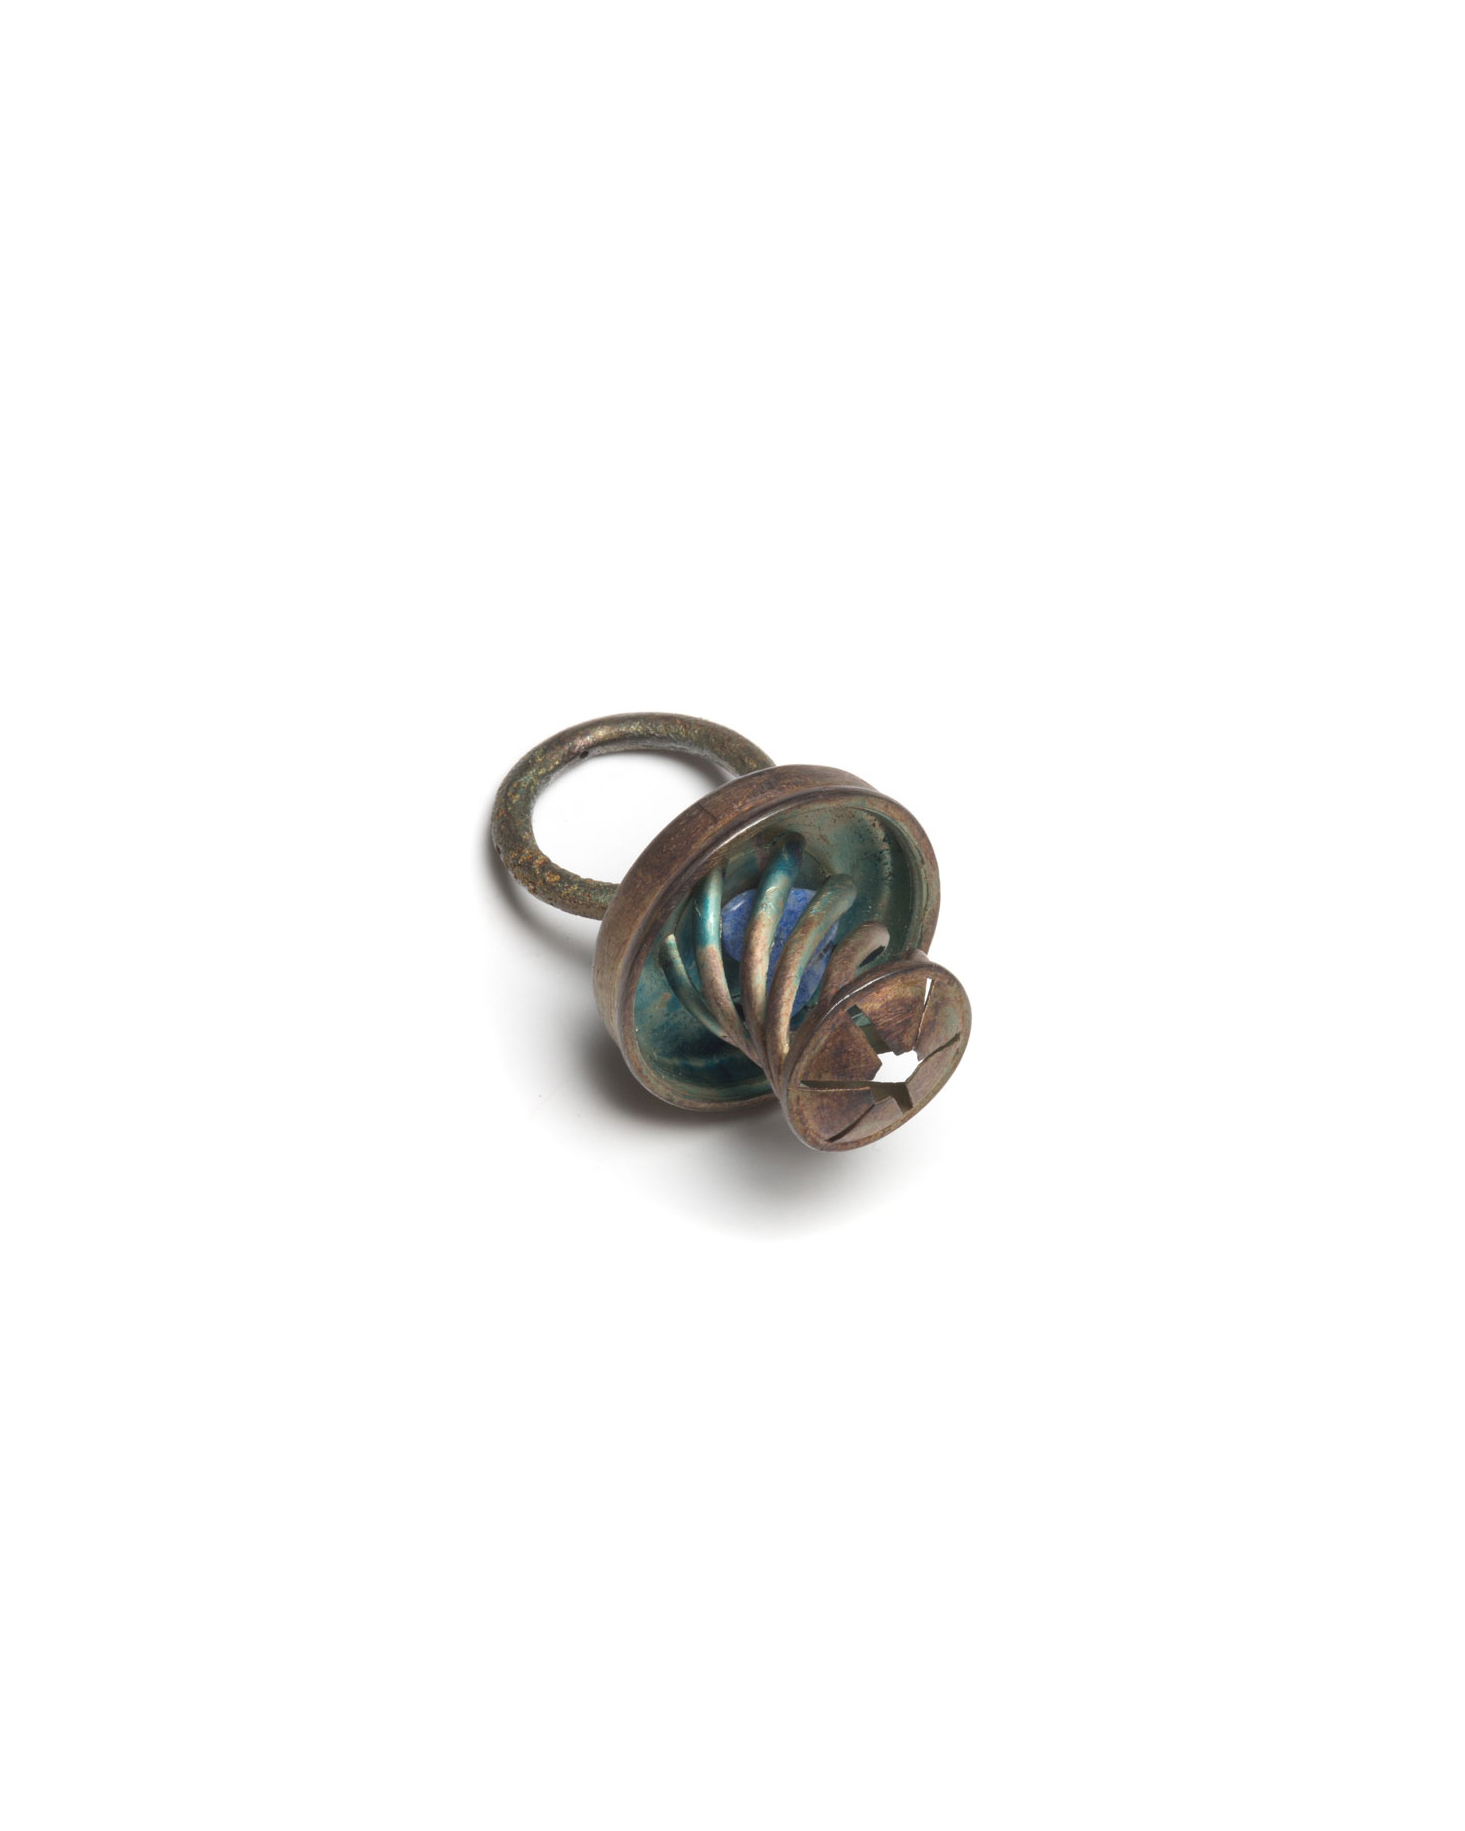 Winfried Krüger, untitled, 1995, ring; oxidised silver, 45 x 30 mm, €850